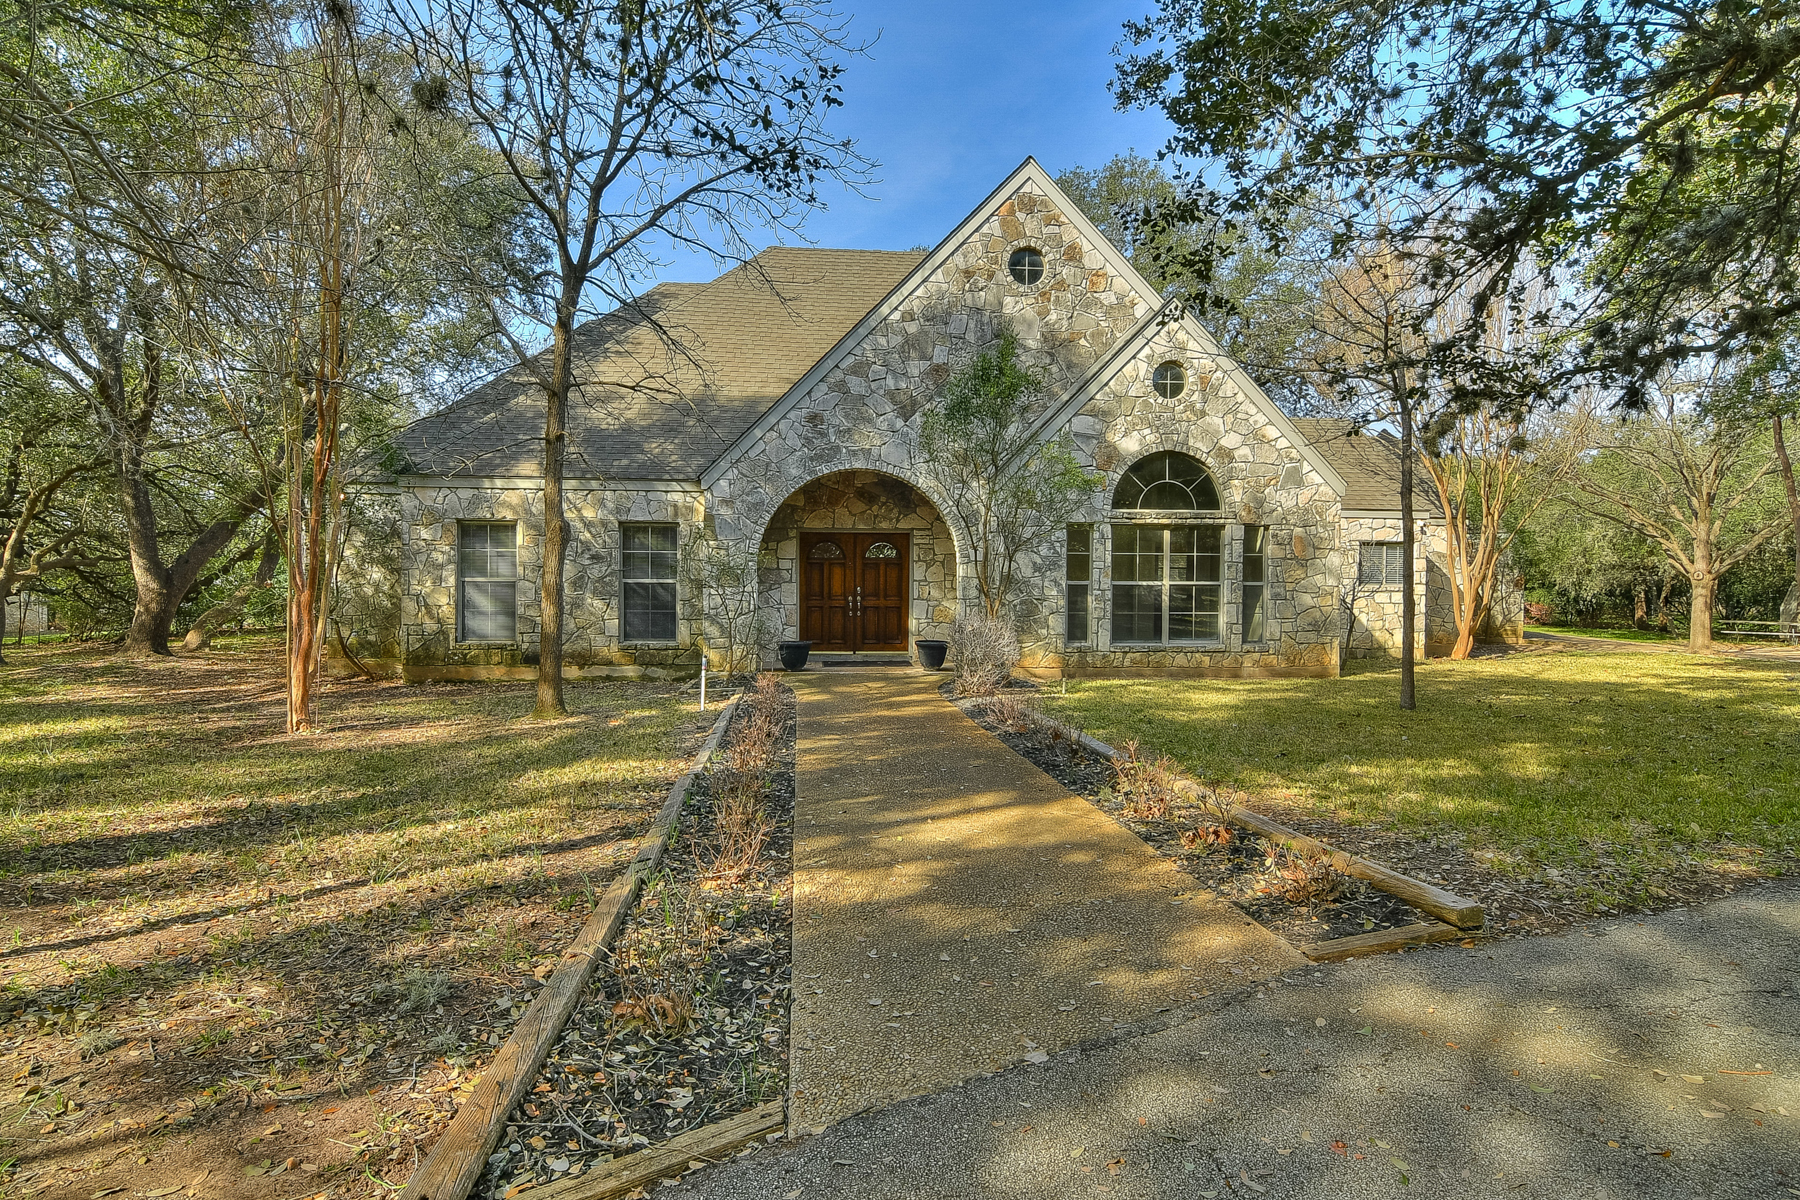 Single Family Home for Sale at Amazing Home on Over an Acre 5405 Prue Rd San Antonio, Texas 78240 United States